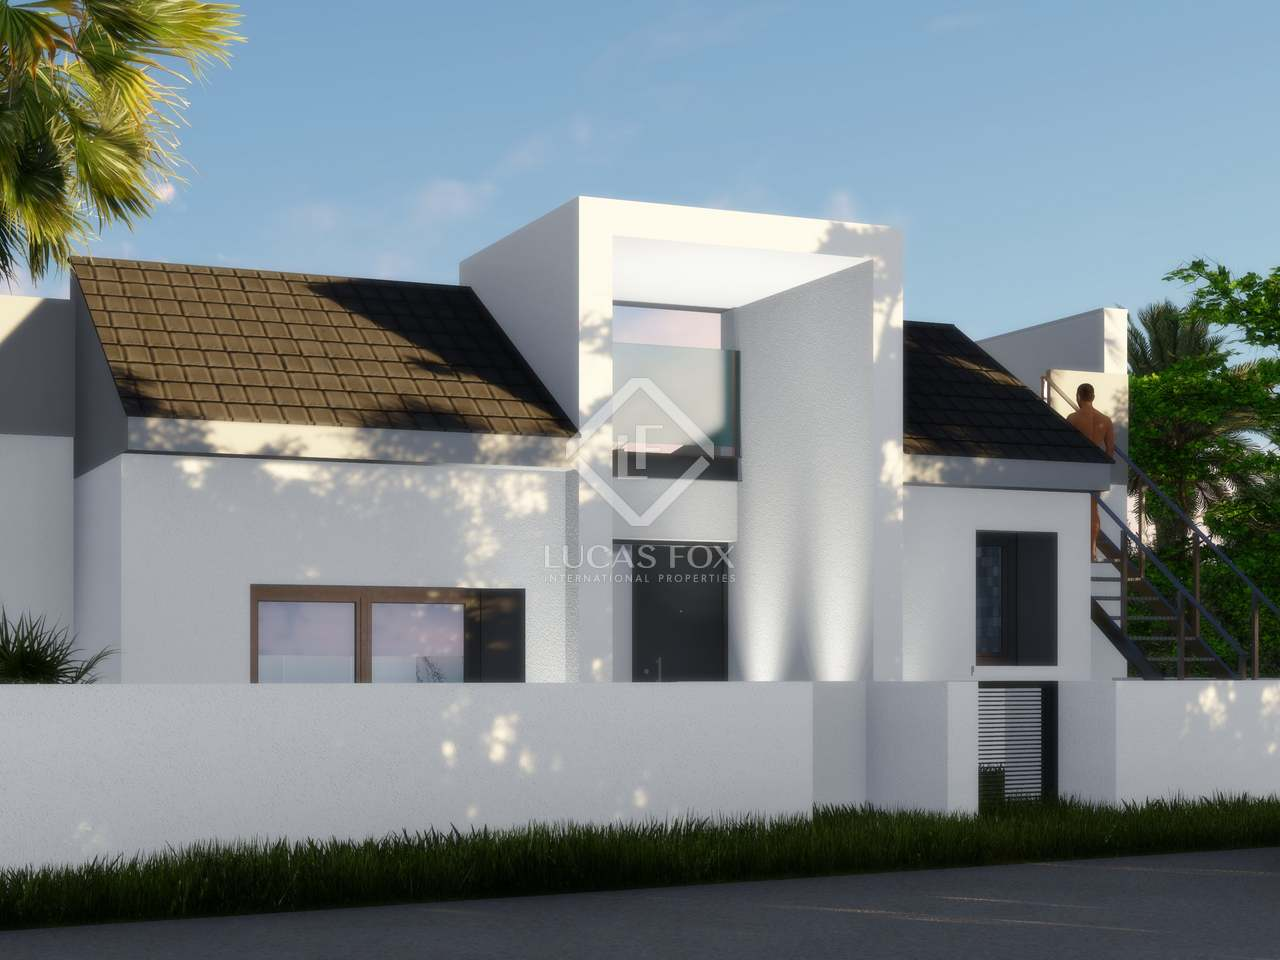 Brand new 7 bedroom house for sale in guadalmina for 7 bedroom house for sale